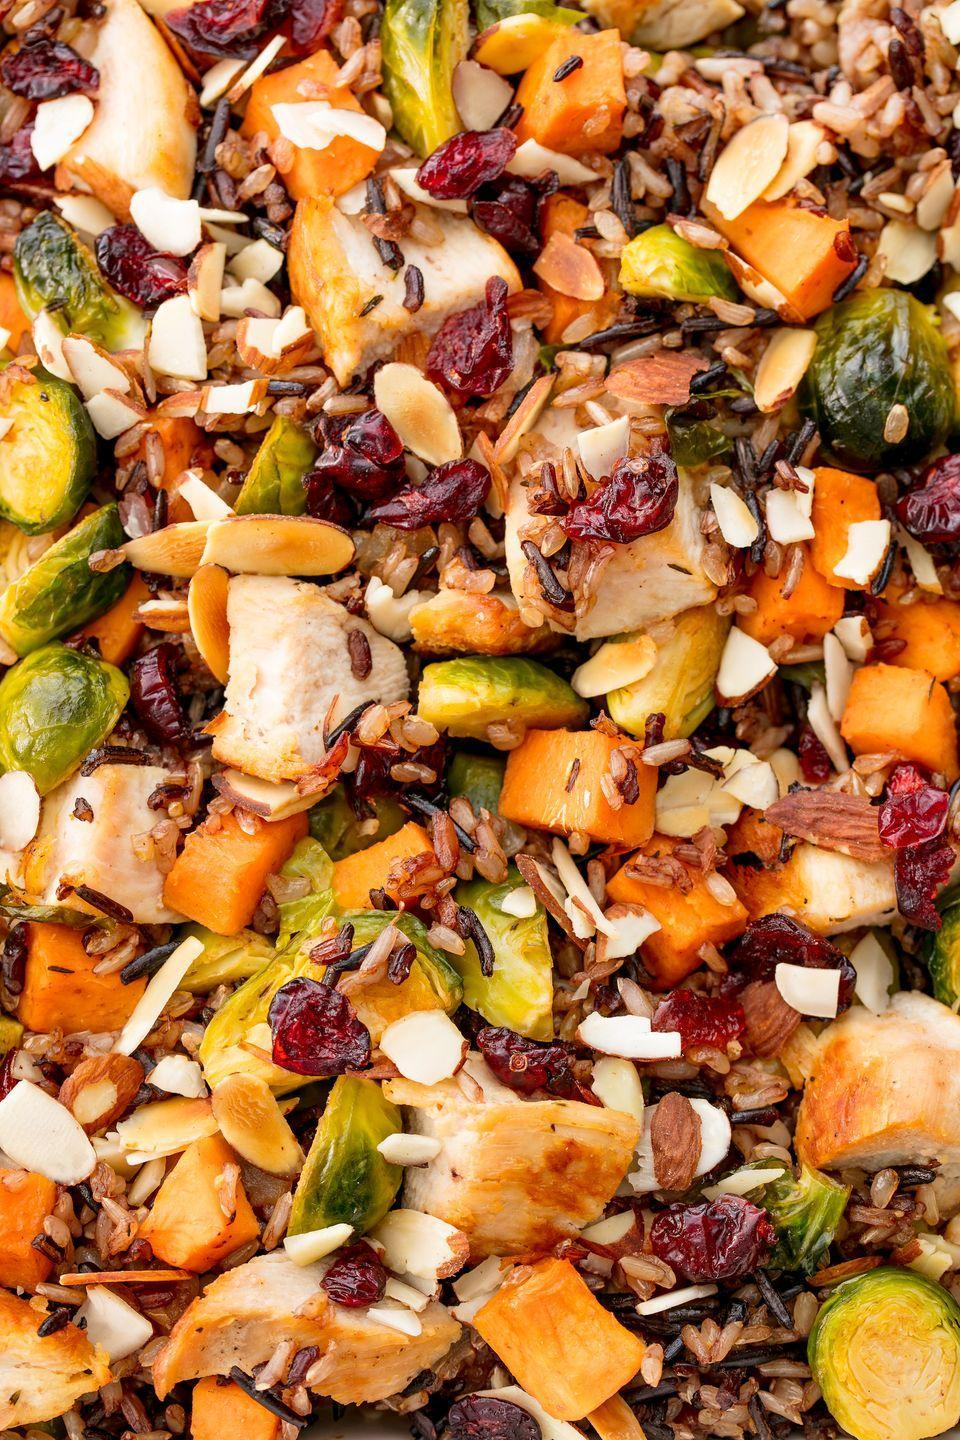 "<p>A satisfying casserole with all of your fall favorites.</p><p>Get the recipe from <a href=""https://www.delish.com/cooking/recipe-ideas/recipes/a55760/healthy-chicken-casserole-recipe/"" rel=""nofollow noopener"" target=""_blank"" data-ylk=""slk:Delish"" class=""link rapid-noclick-resp"">Delish</a>.</p>"